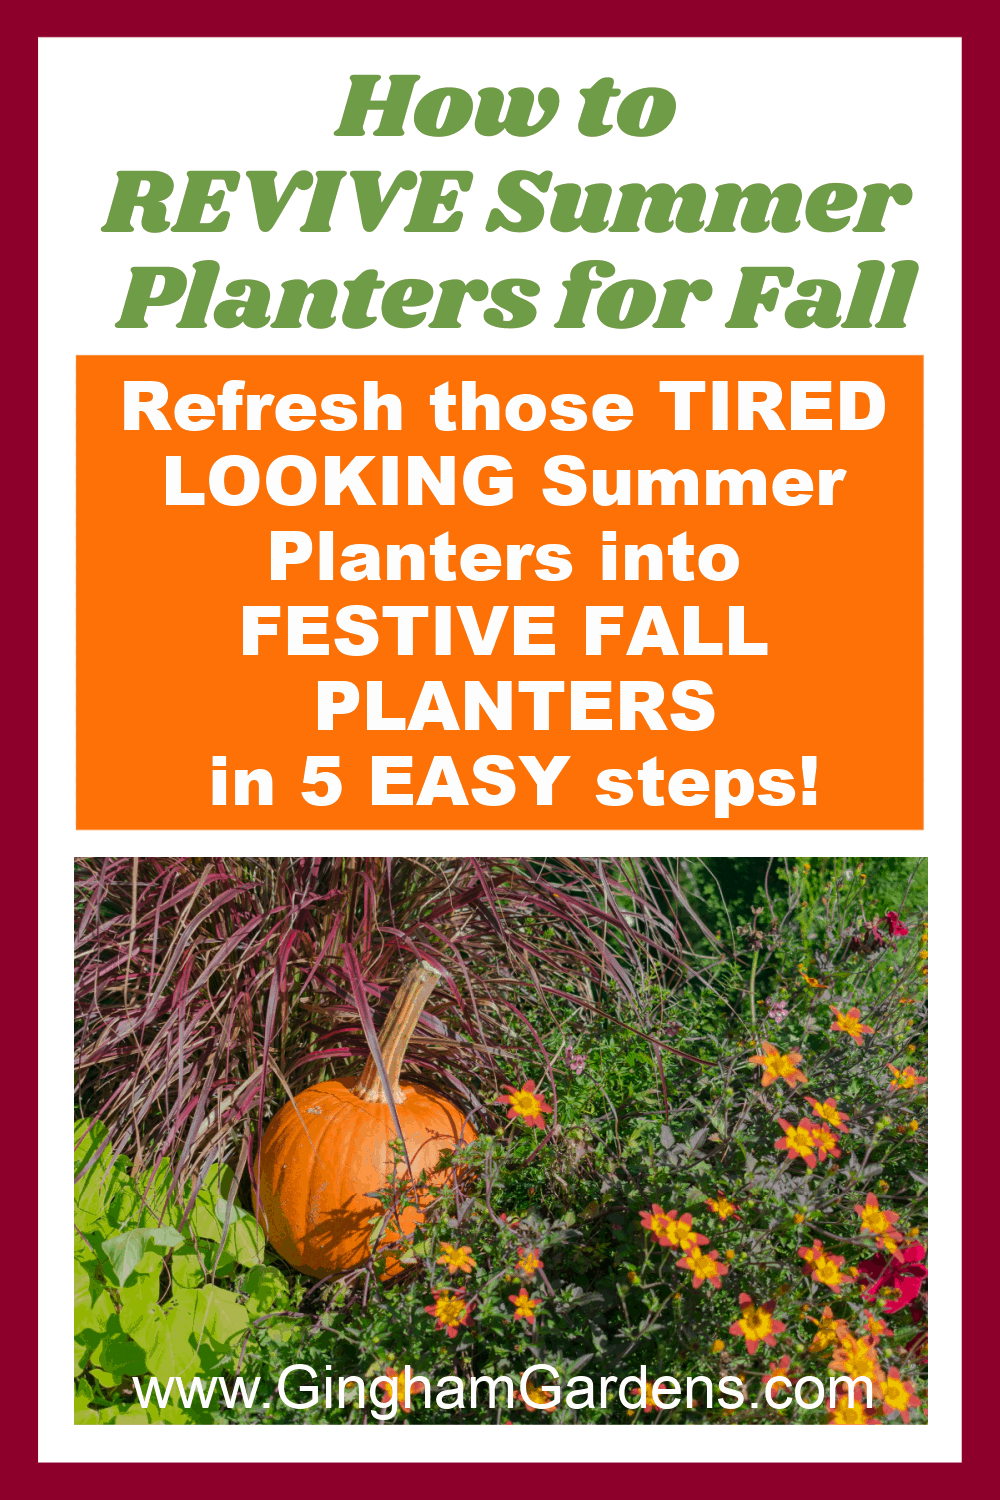 Image of a fall flower planter with text overlay - how to revive summer planters for fall